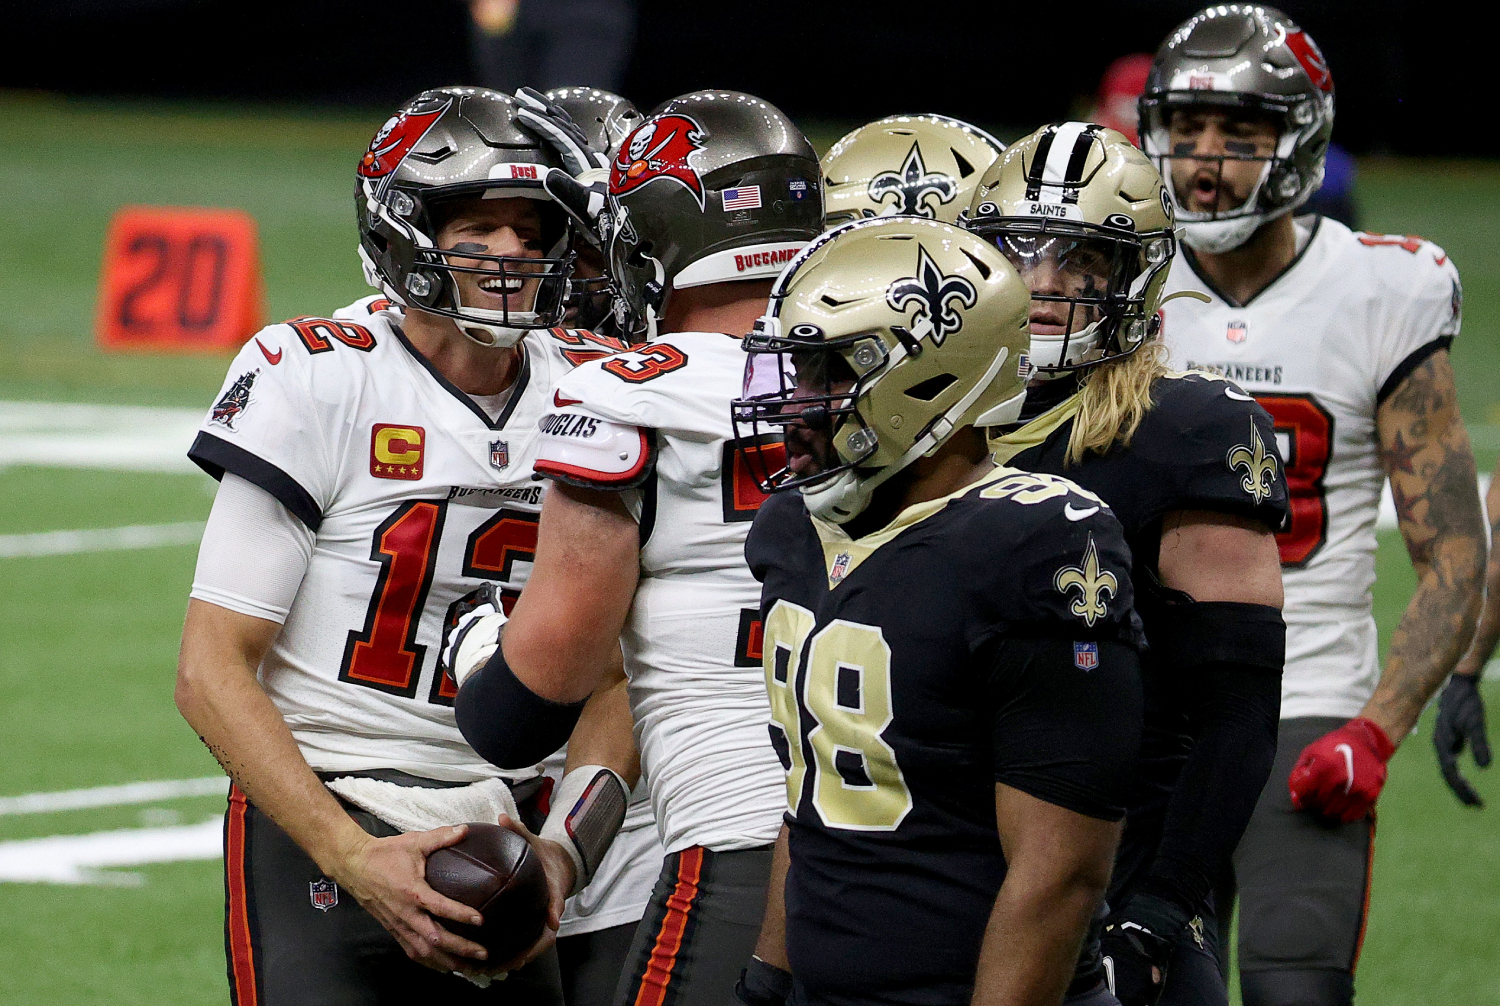 The New Orleans Saints loss is the least of their worries.